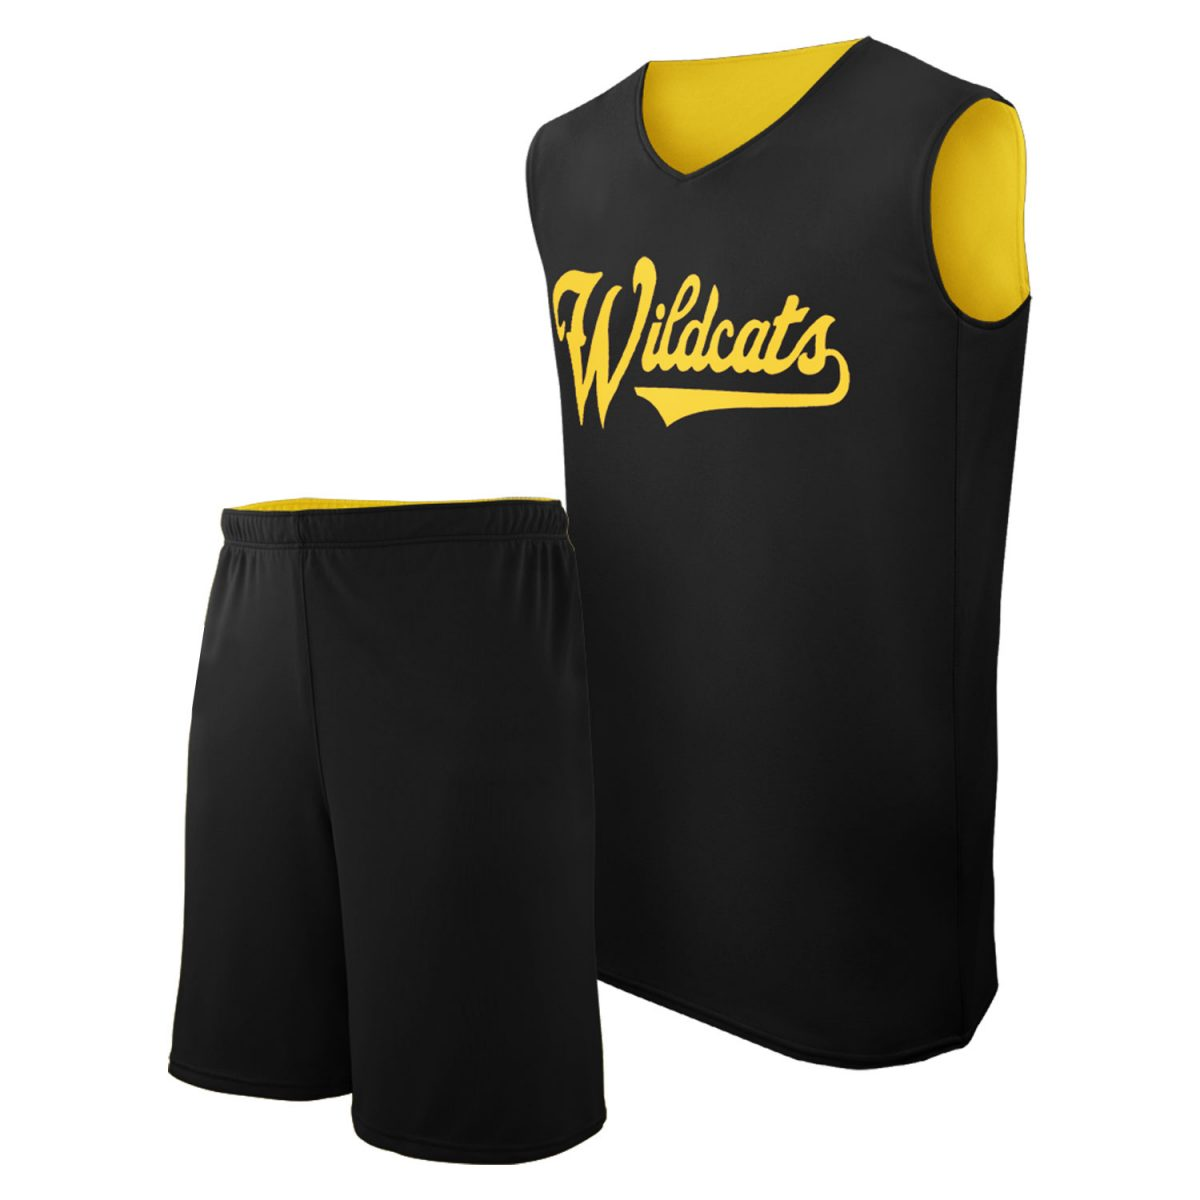 Boys Basketball Uniforms Manufacturers in Noida